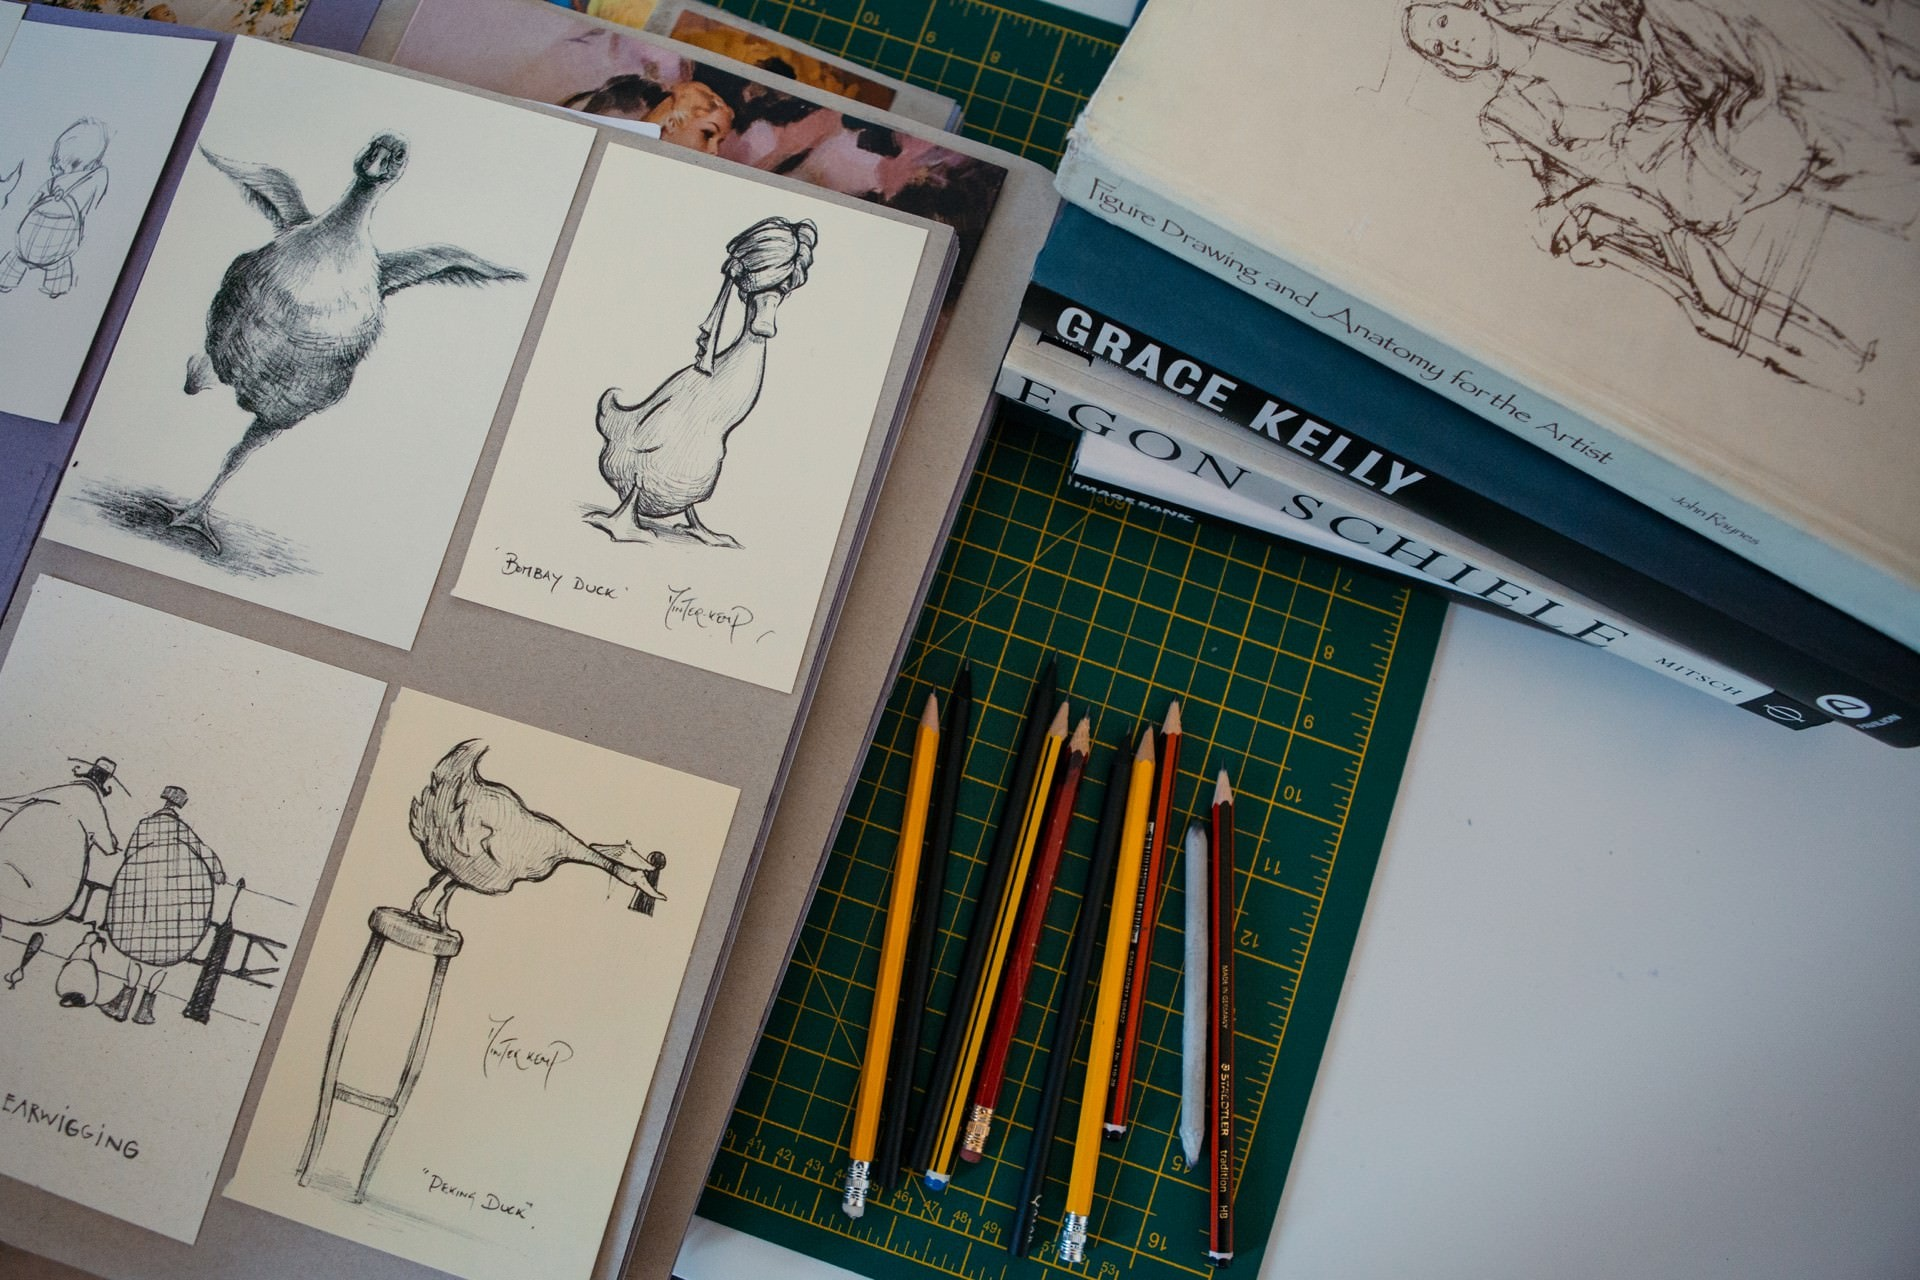 pencils and drawings on a table